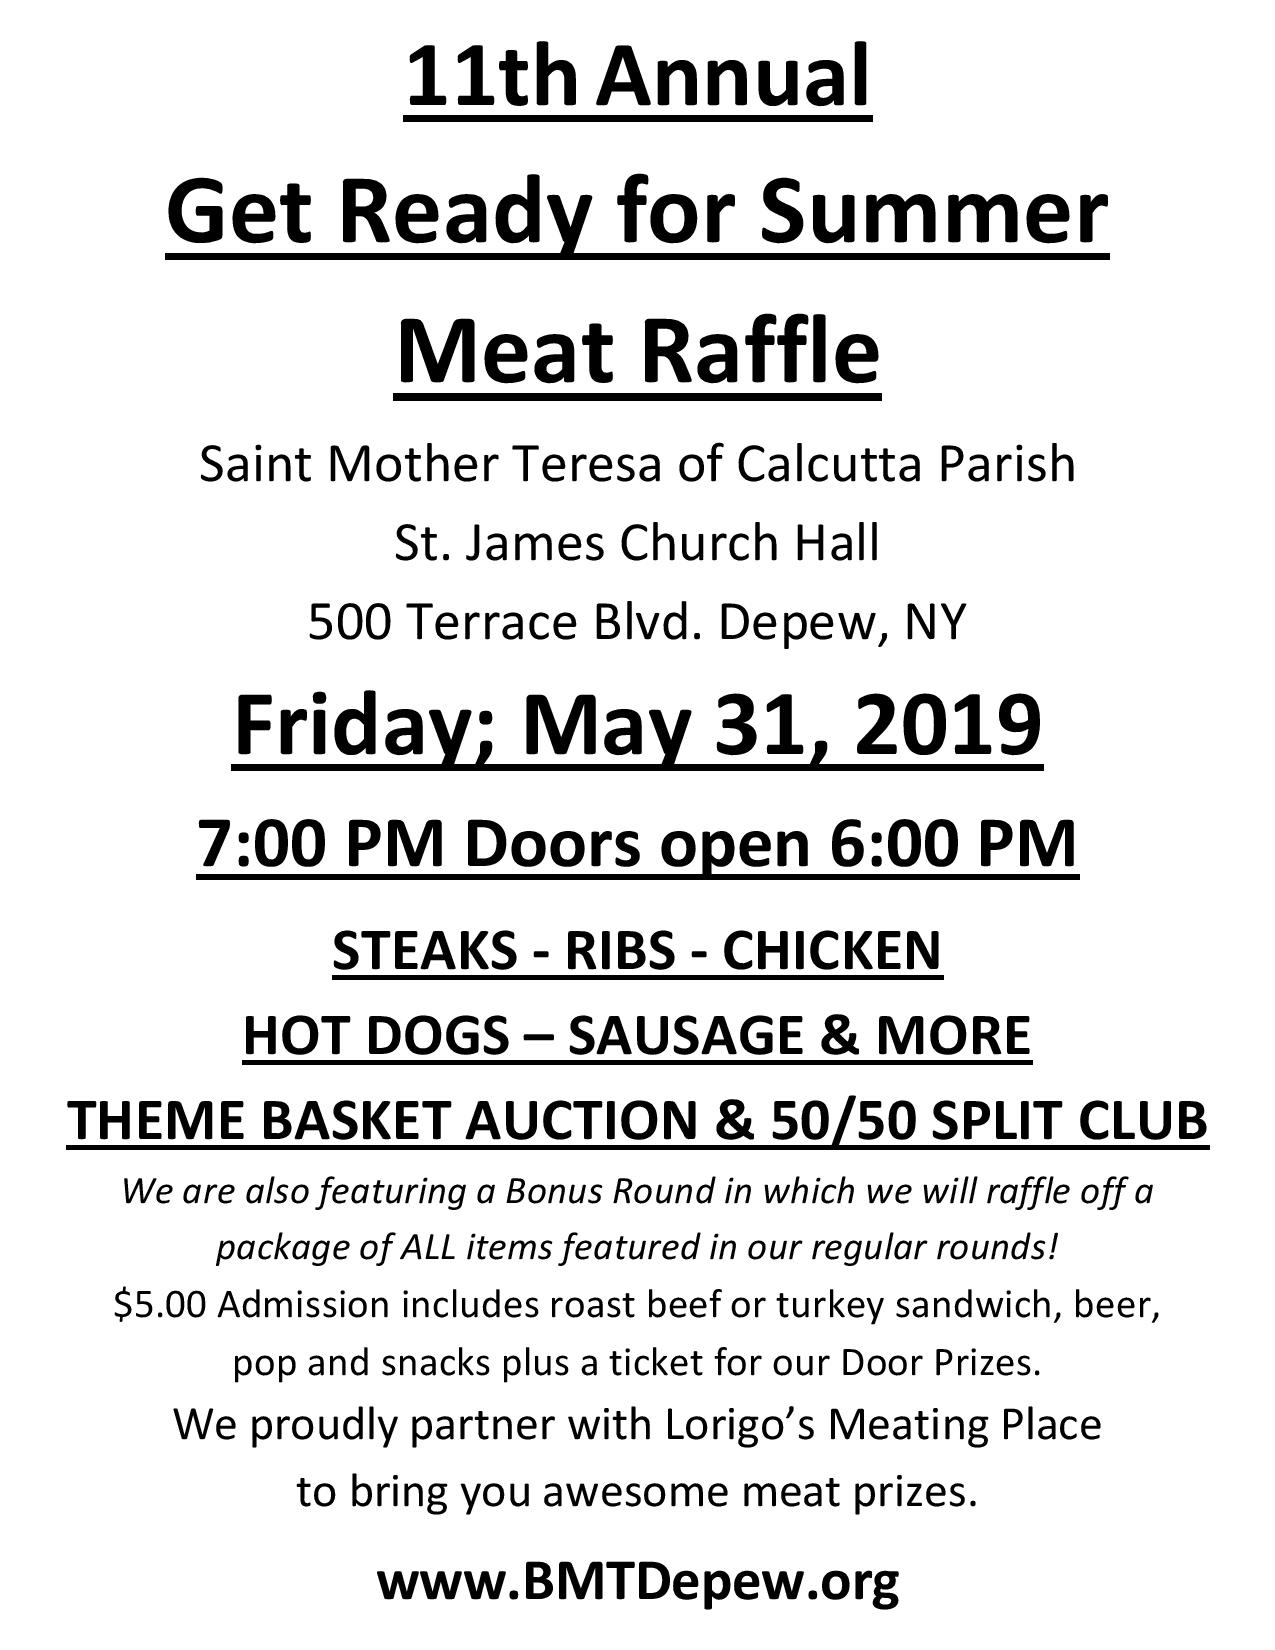 11th Annual Get Ready for Summer Meat Raffle-page-001.jpg